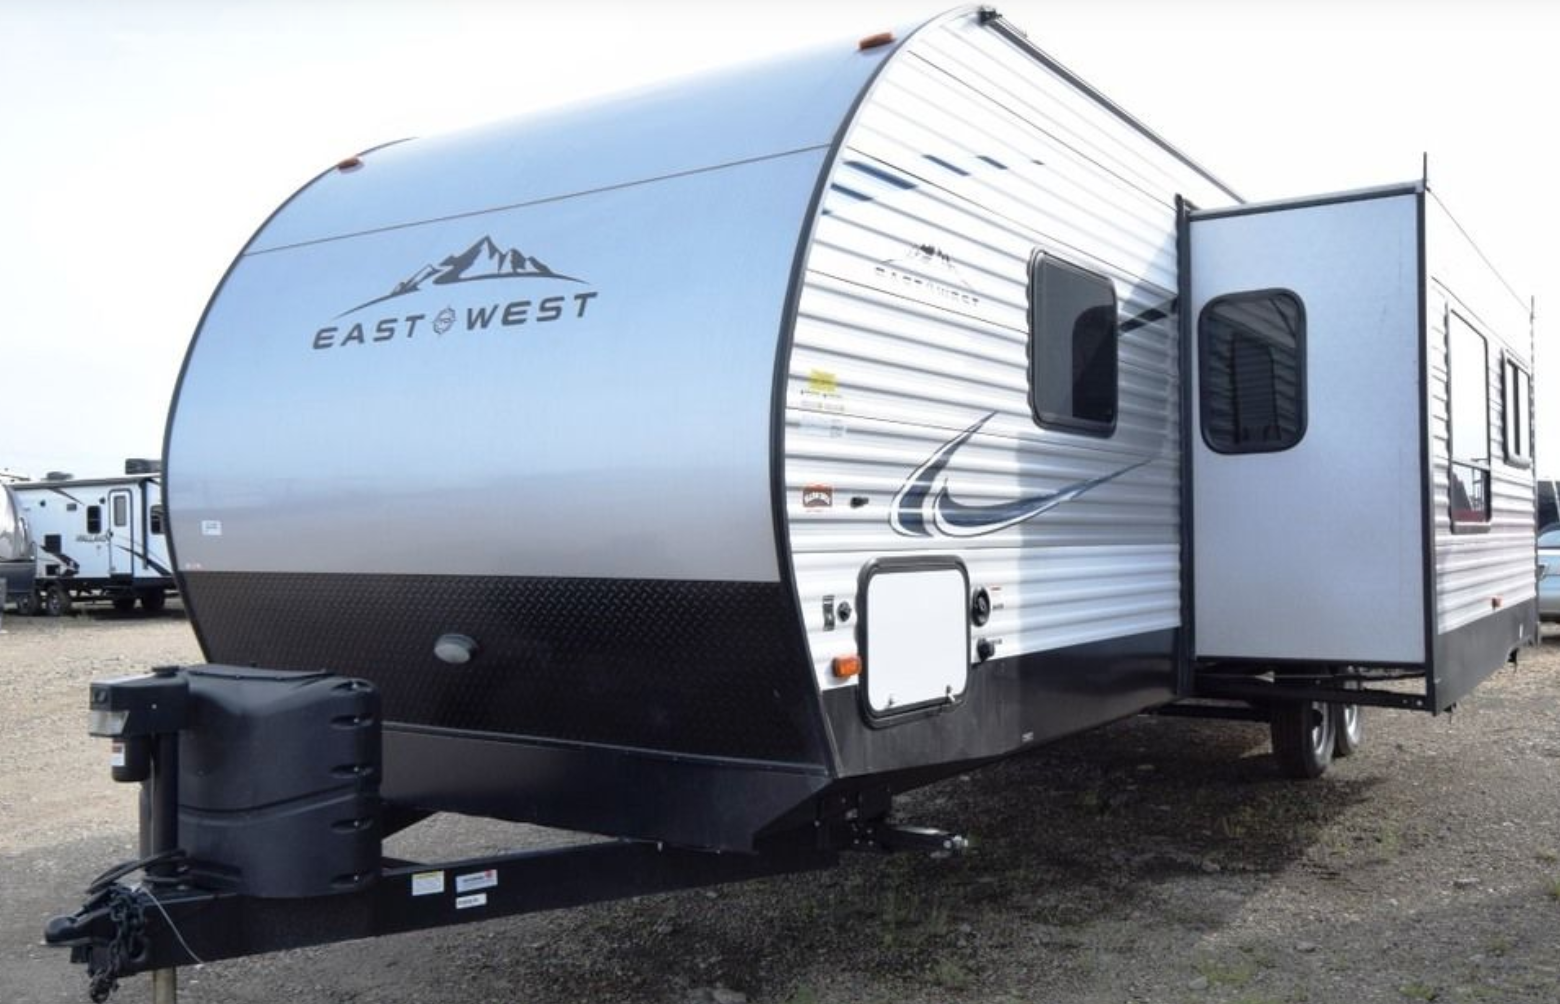 41+ East to west rv Free